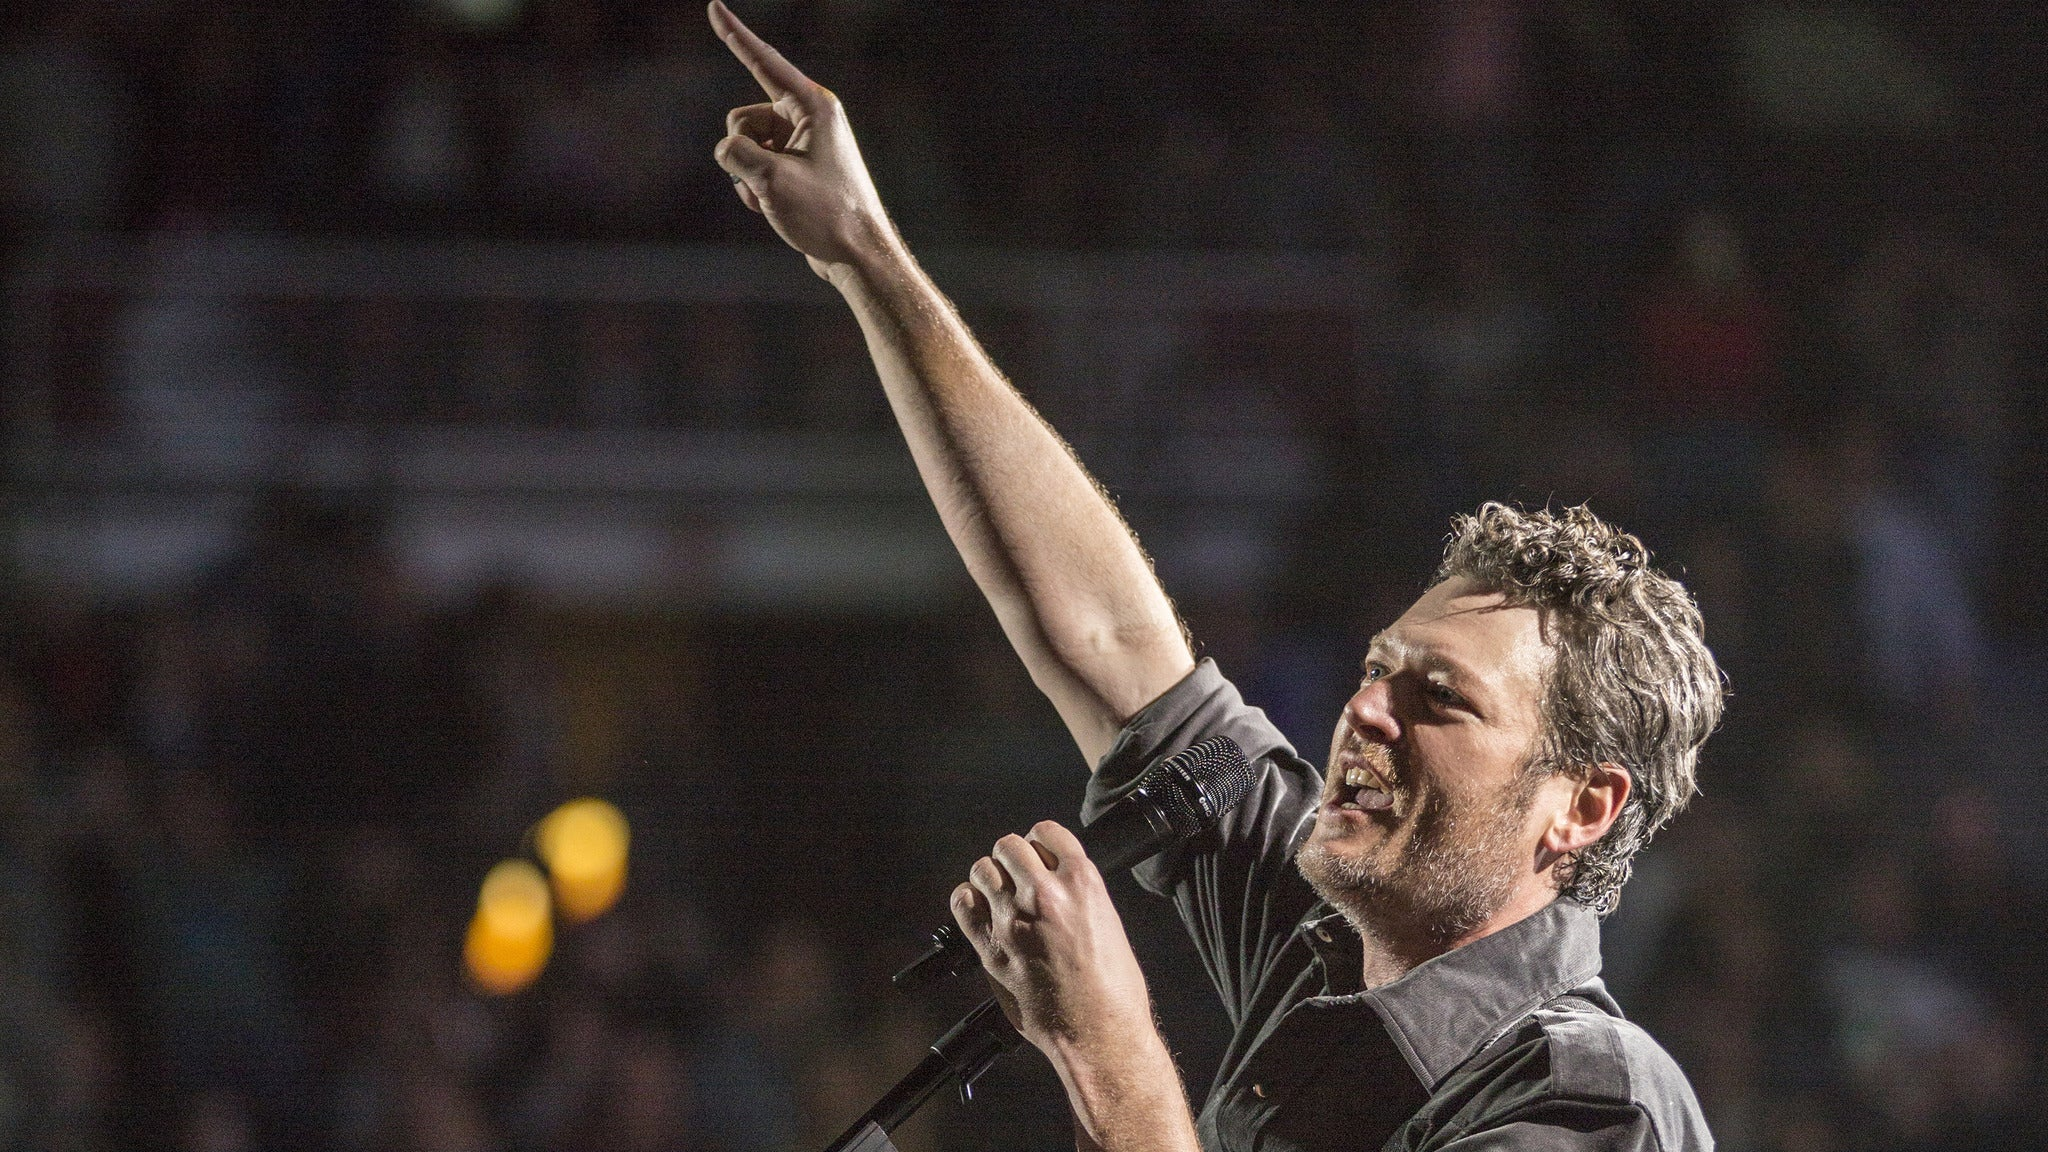 Blake Shelton: Friends & Heroes 2019